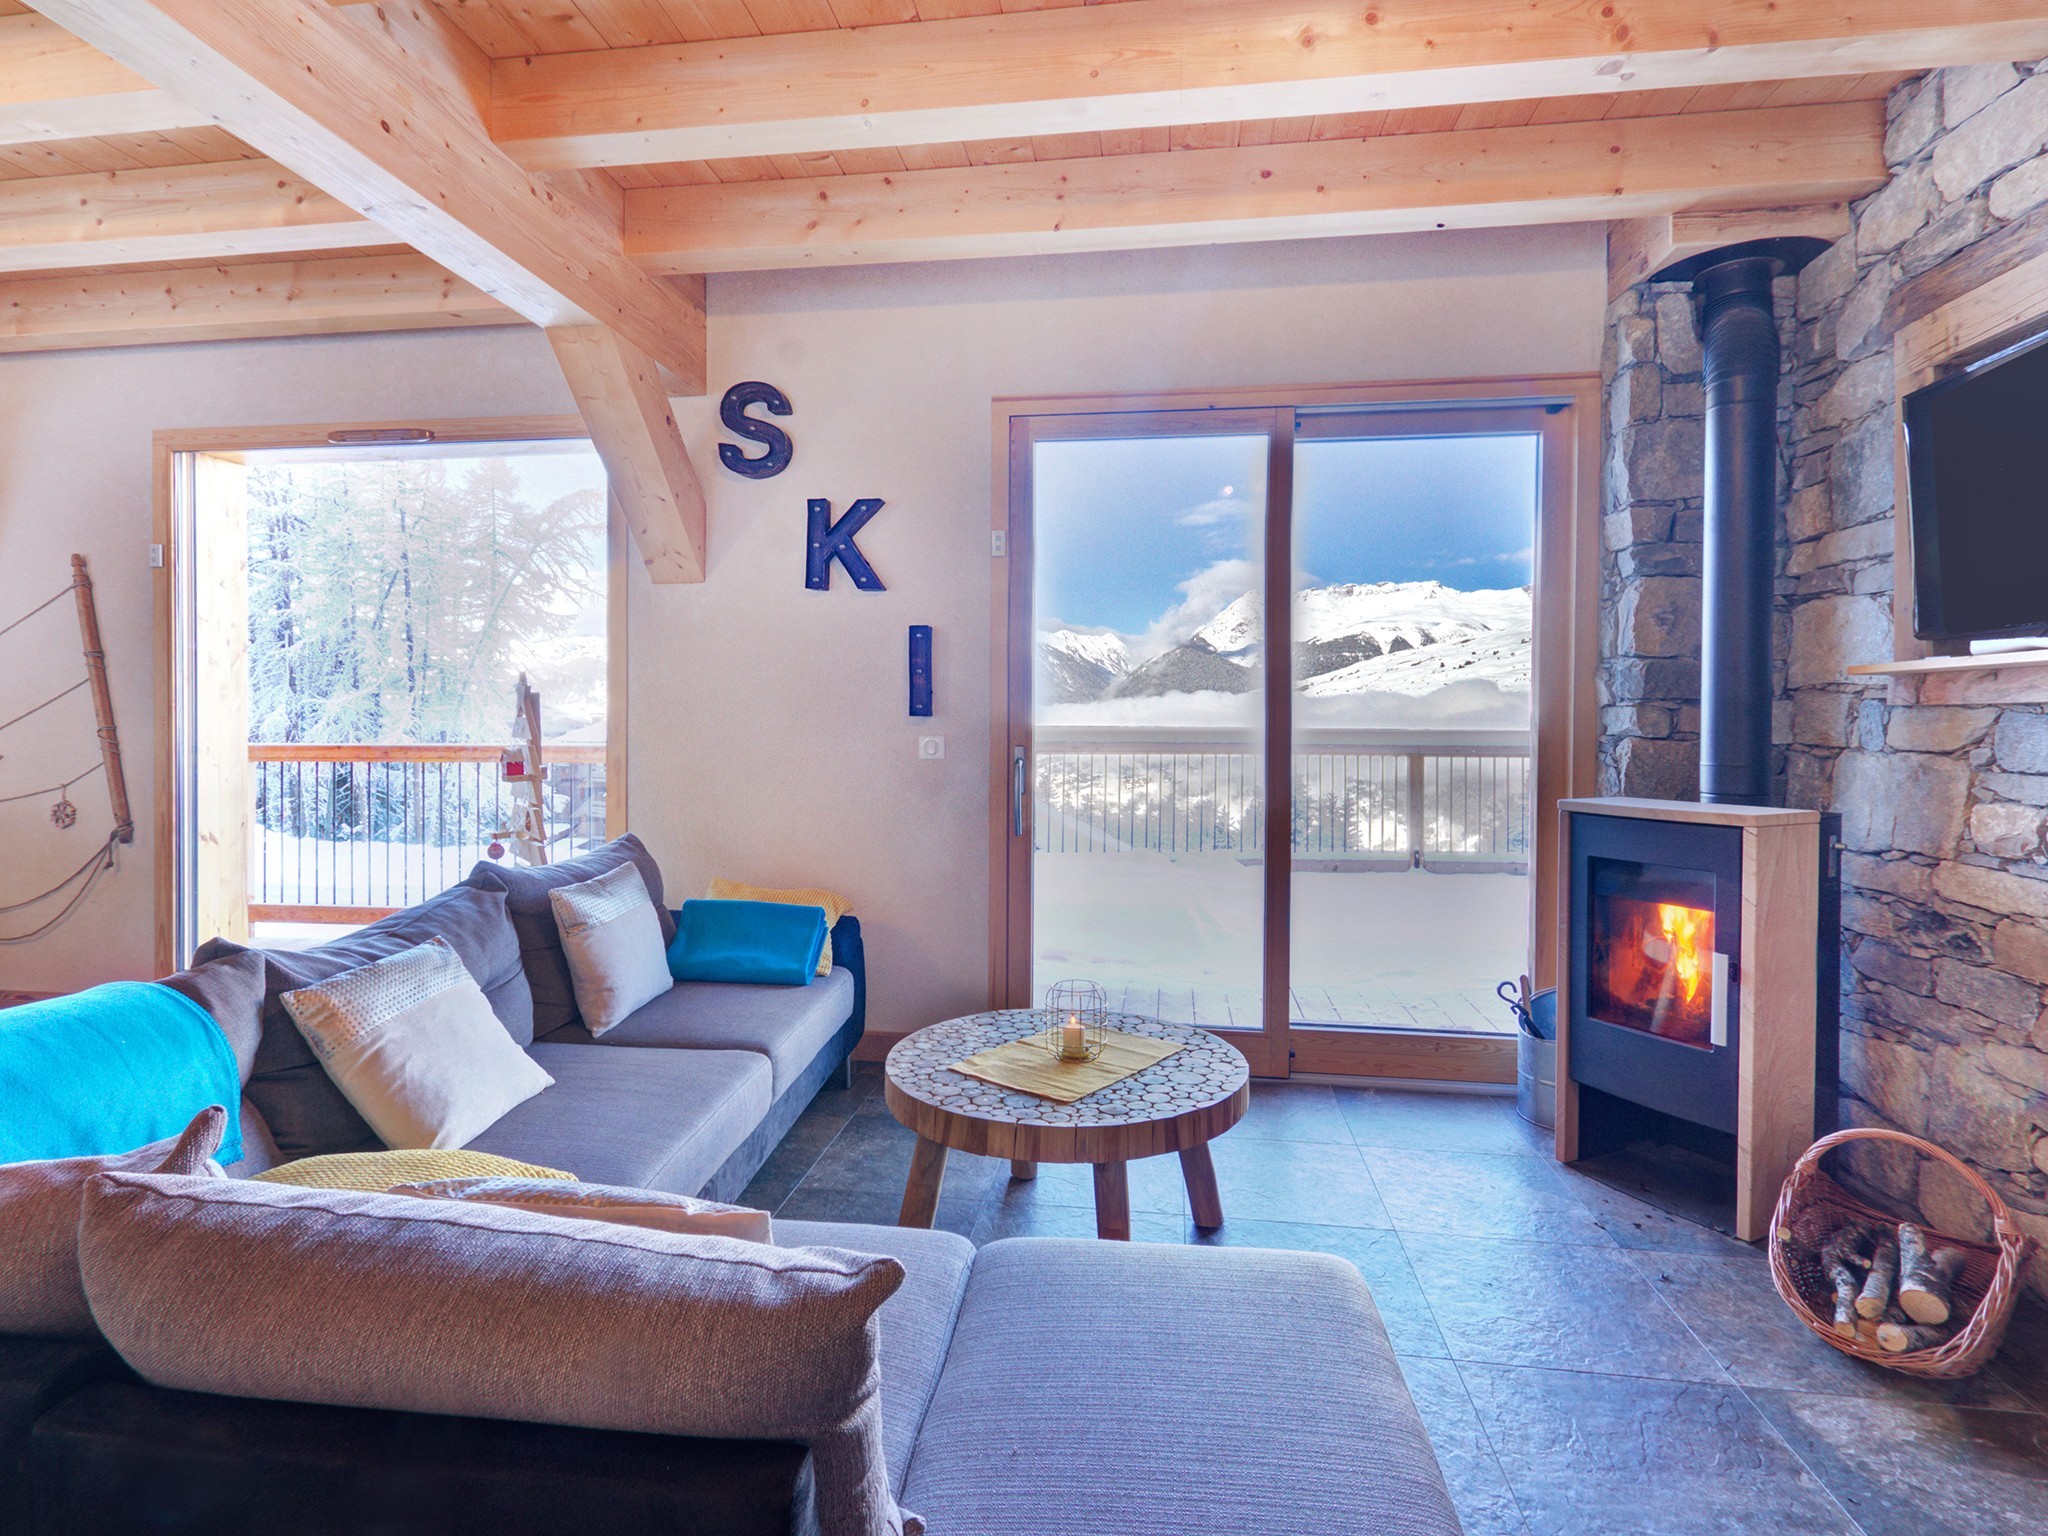 Chalet Ski Dream - living room